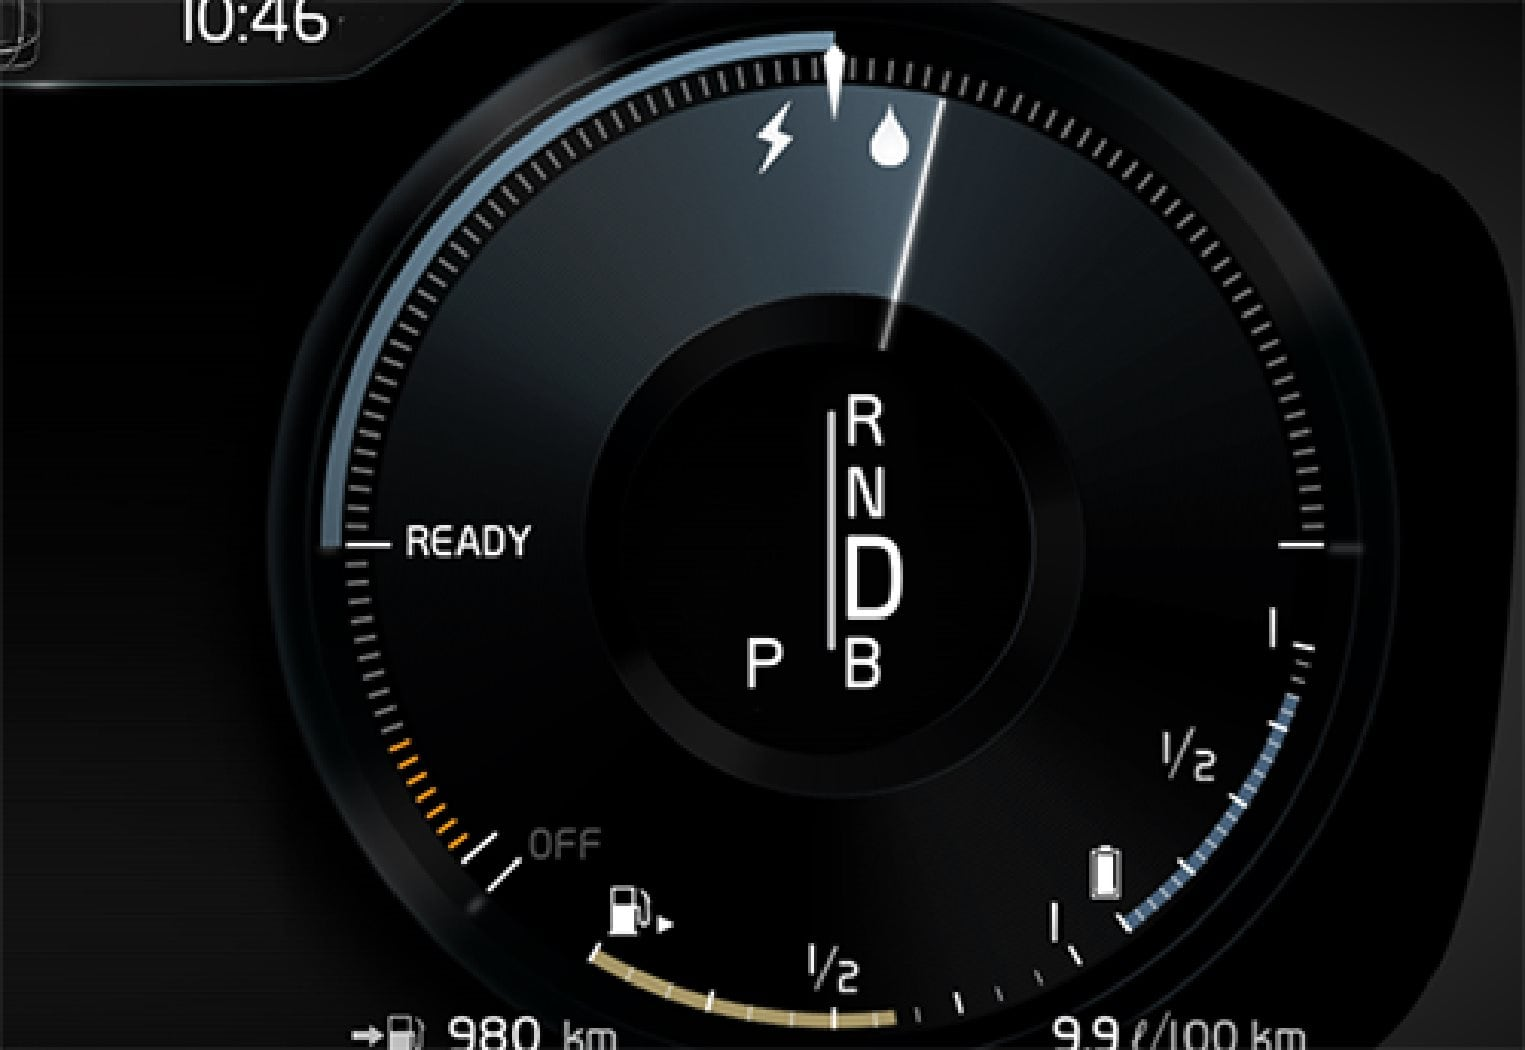 The driver display for propulsion with both the electric motor and internal combustion engine.